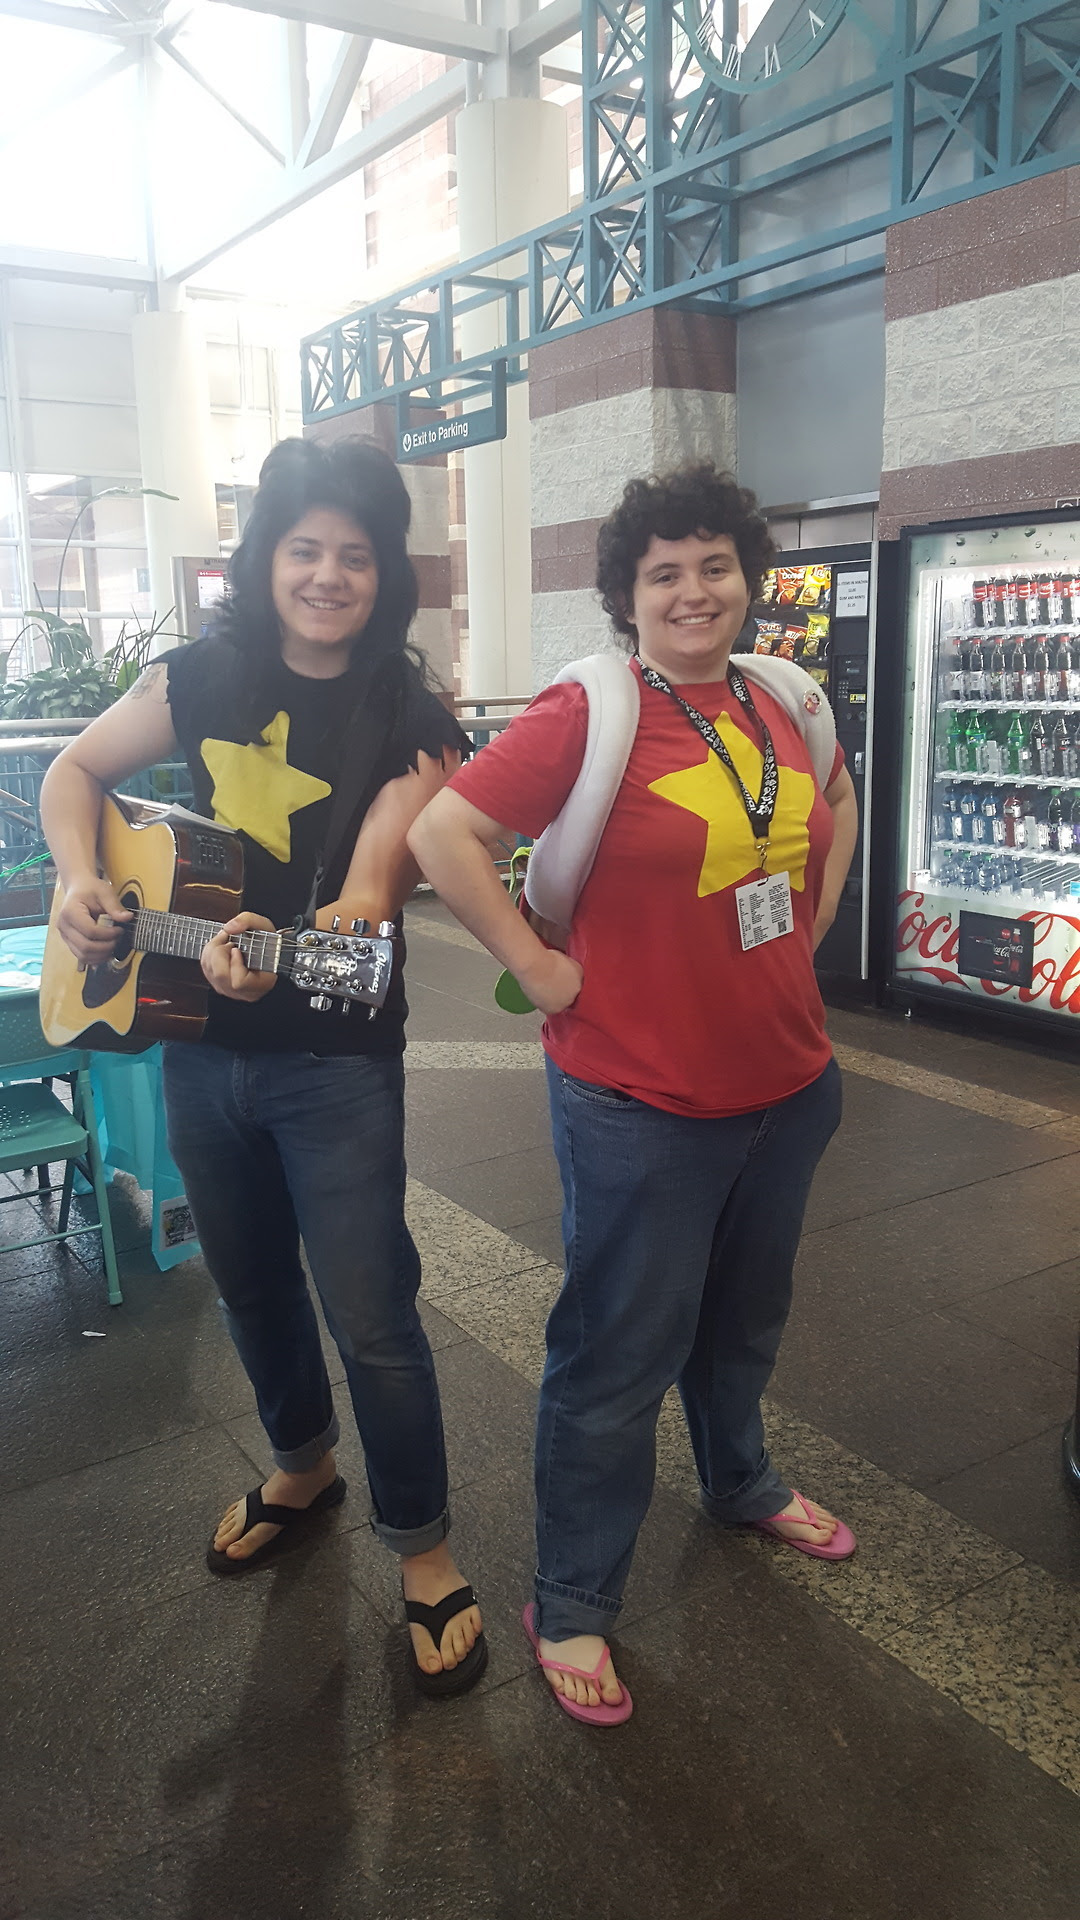 Hey it's me, Mr. Universe! I snapped a few photos with some awesome cosplayers, and if anyone has some of me, please drop them in the comments and tag me! Thanks! (Also, tag yourself here if you're in...